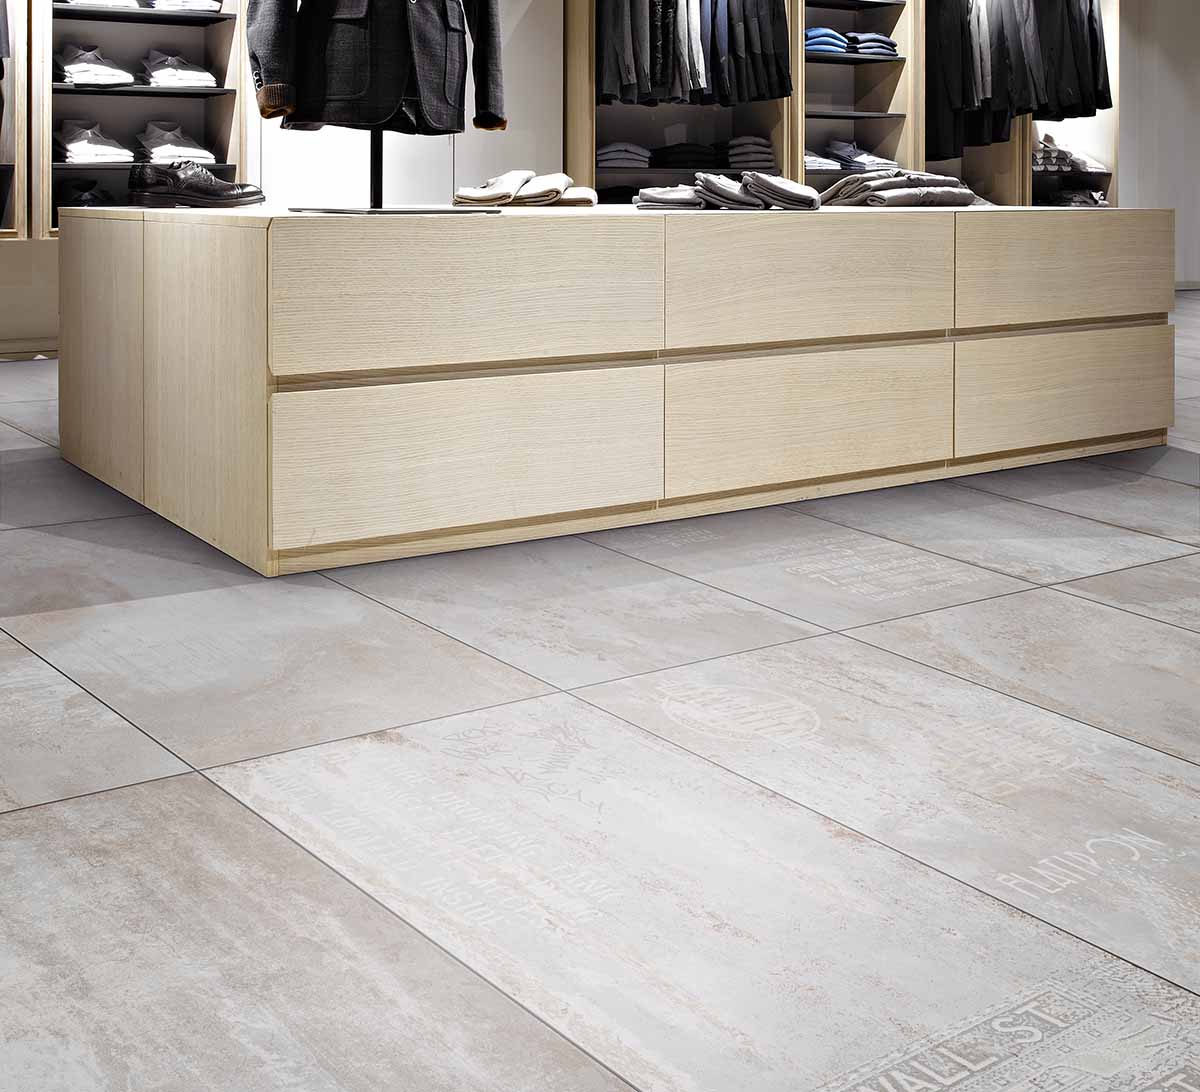 Floor Tiles Wall Tiles Veg120 1 Cirillo Lighting And